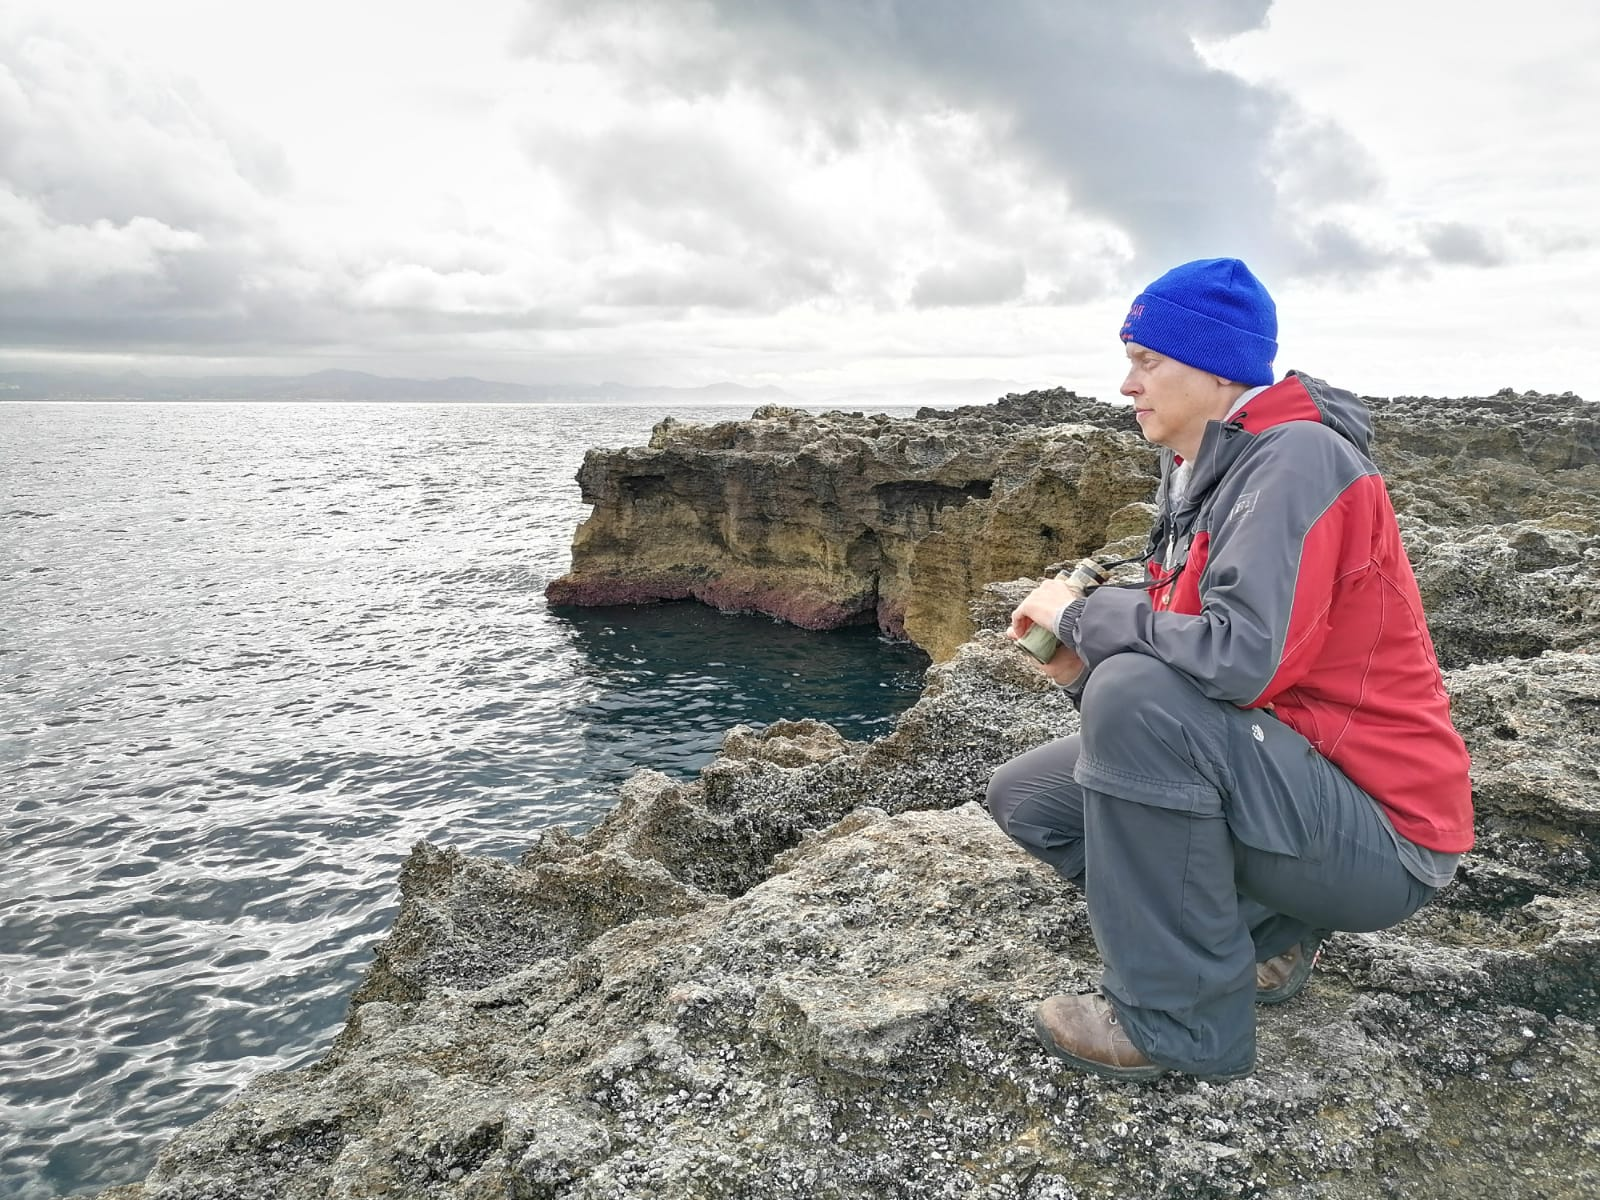 a scientist in a boise state hat kneels on a cliff edge overlooking the ocean, holding binoculars